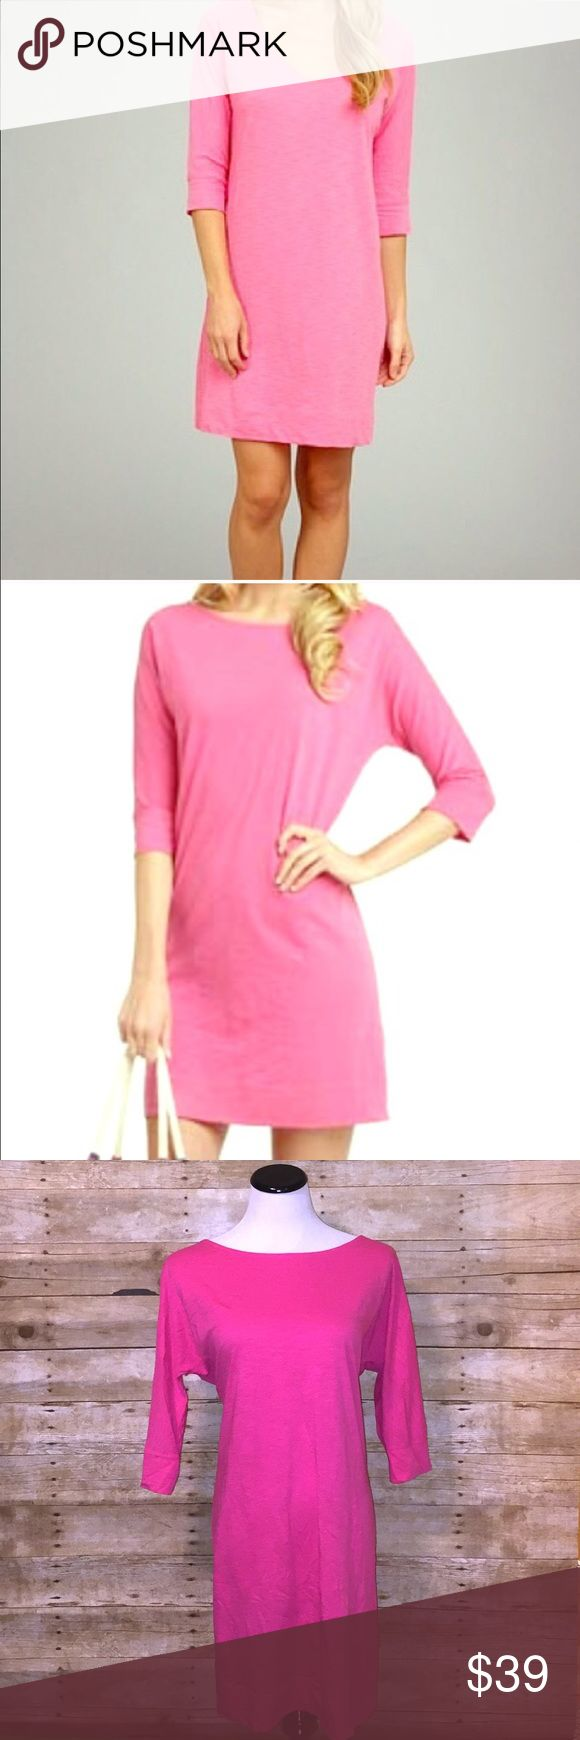 Lilly Pulitzer Pink Dress Pink dress from Lilly Pulitzer with elbow length sleeves. Color is a dark pink. Made from 100% Pima cotton. Excellent used condition! 🚫NO TRADES🚫 Lilly Pulitzer Dresses